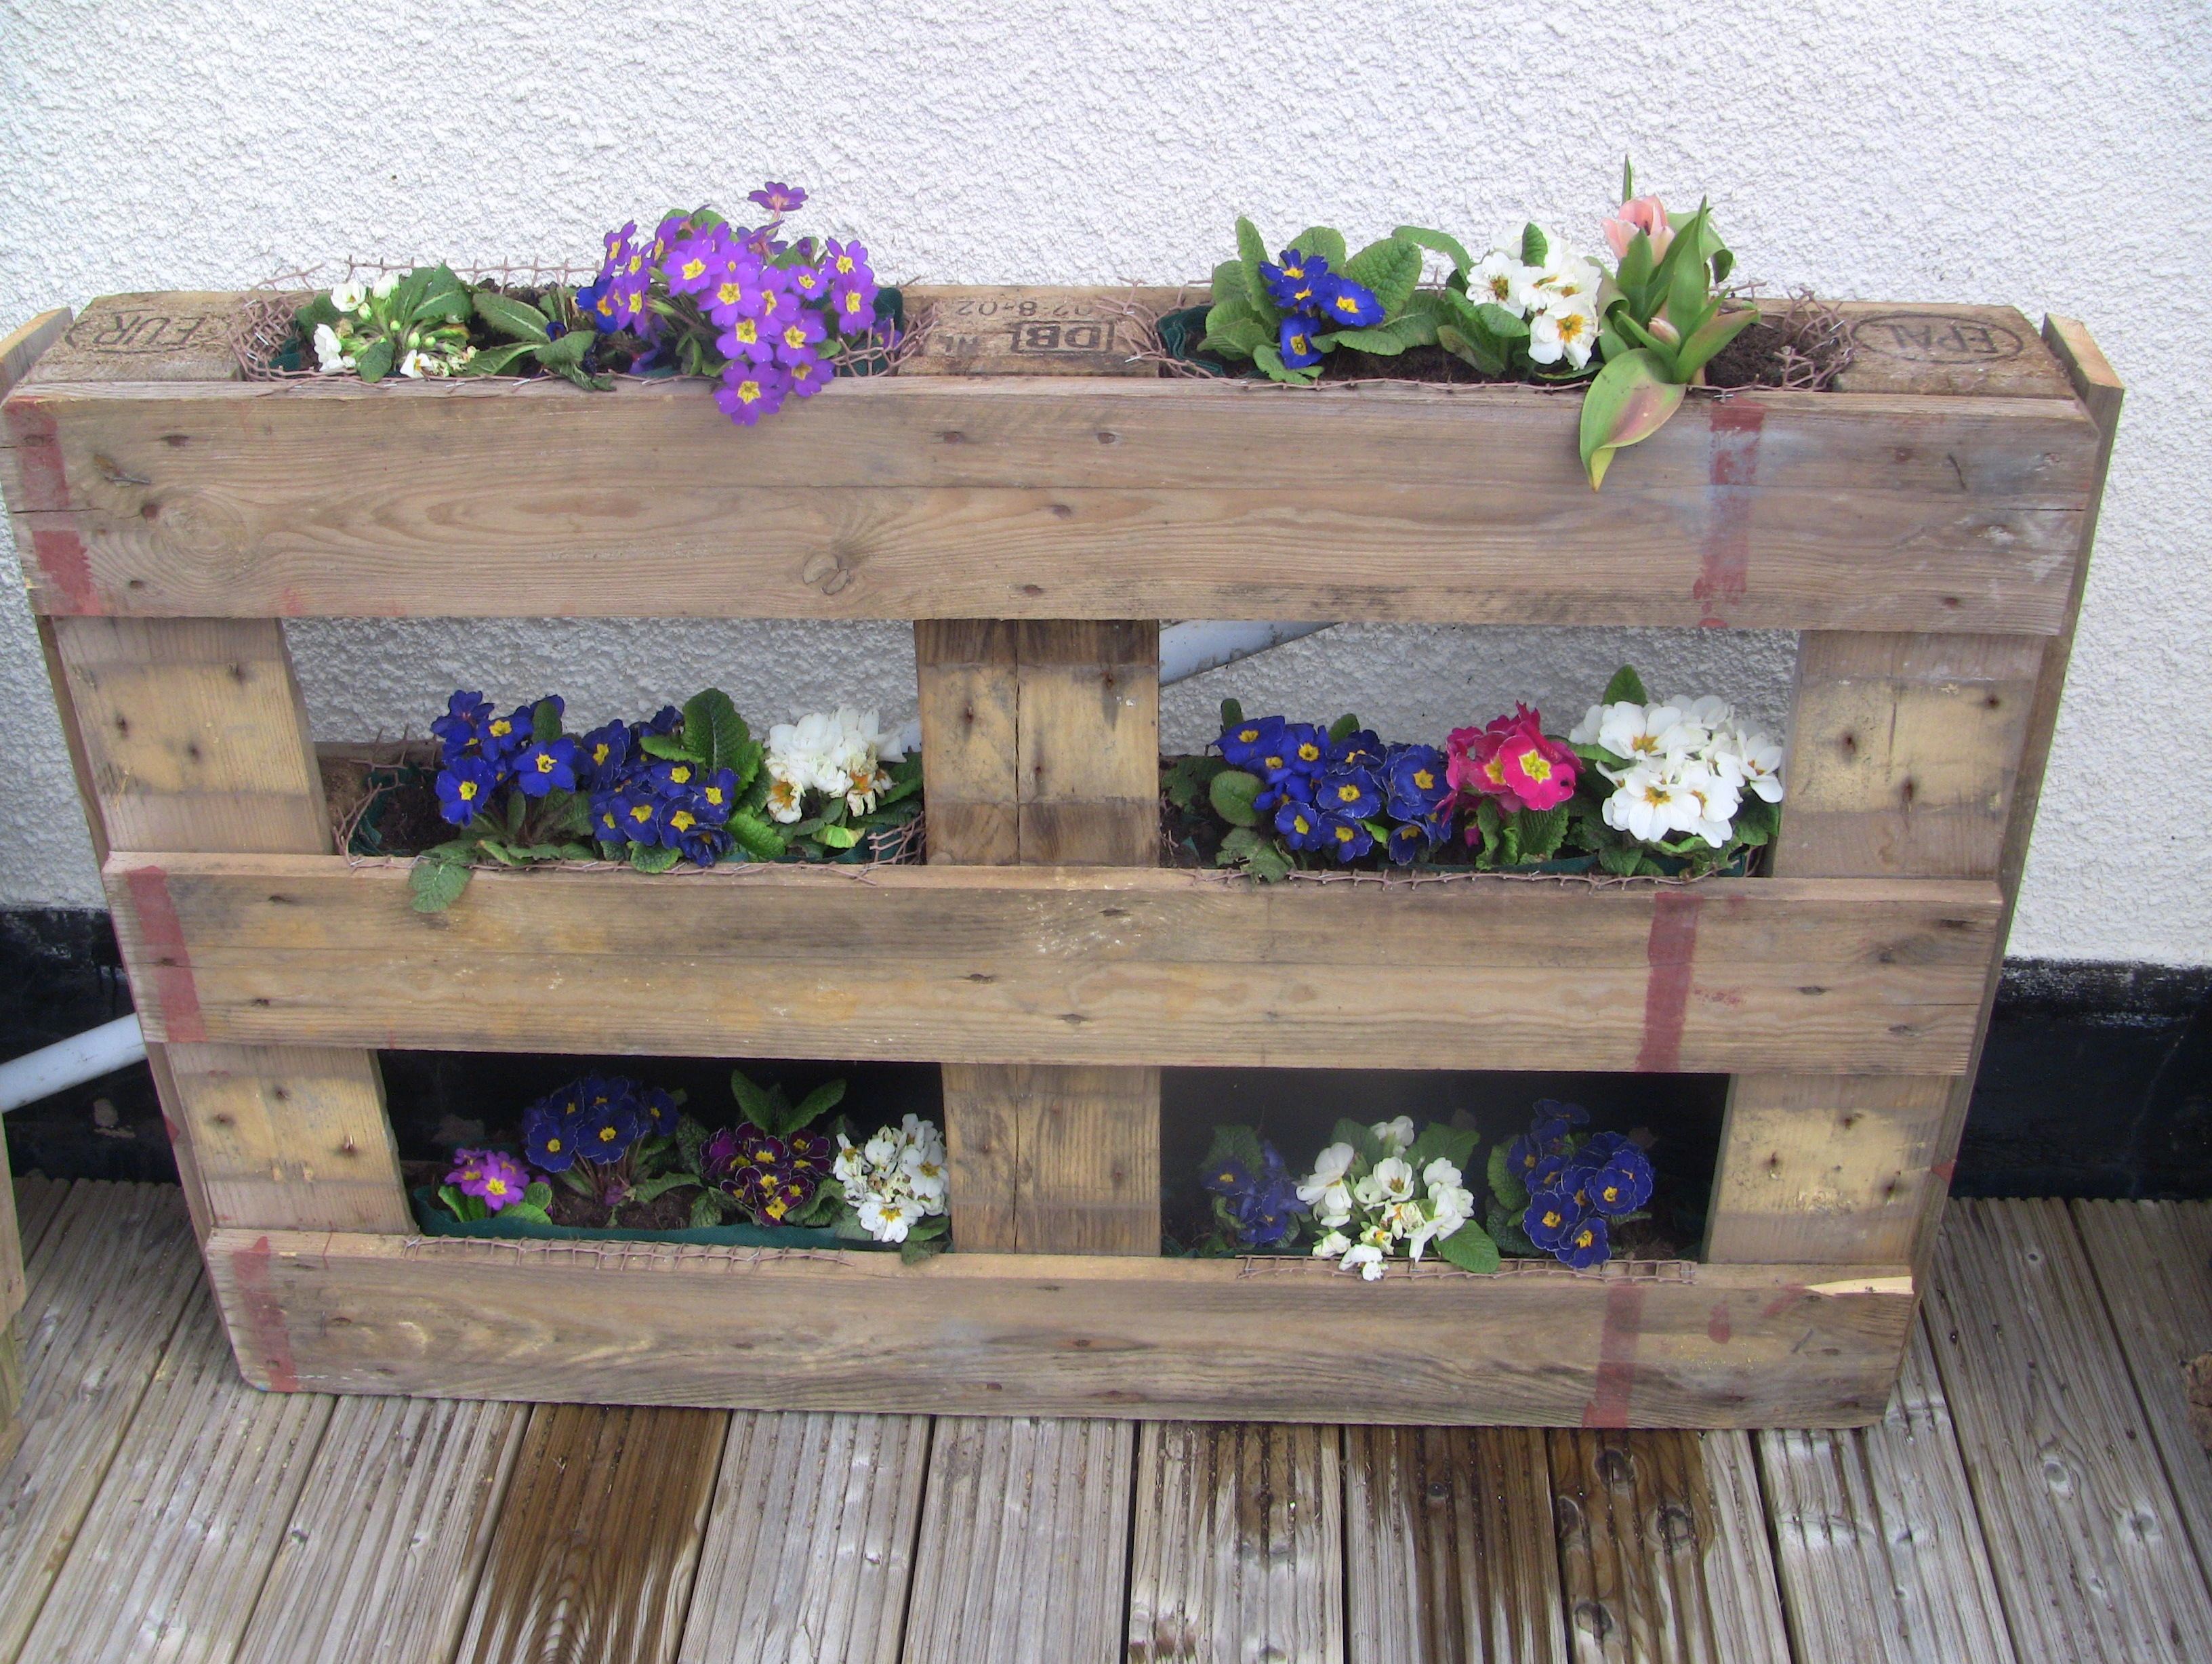 Garden Ideas With Pallets 15 outdoor pallet furniture ideas | love the garden